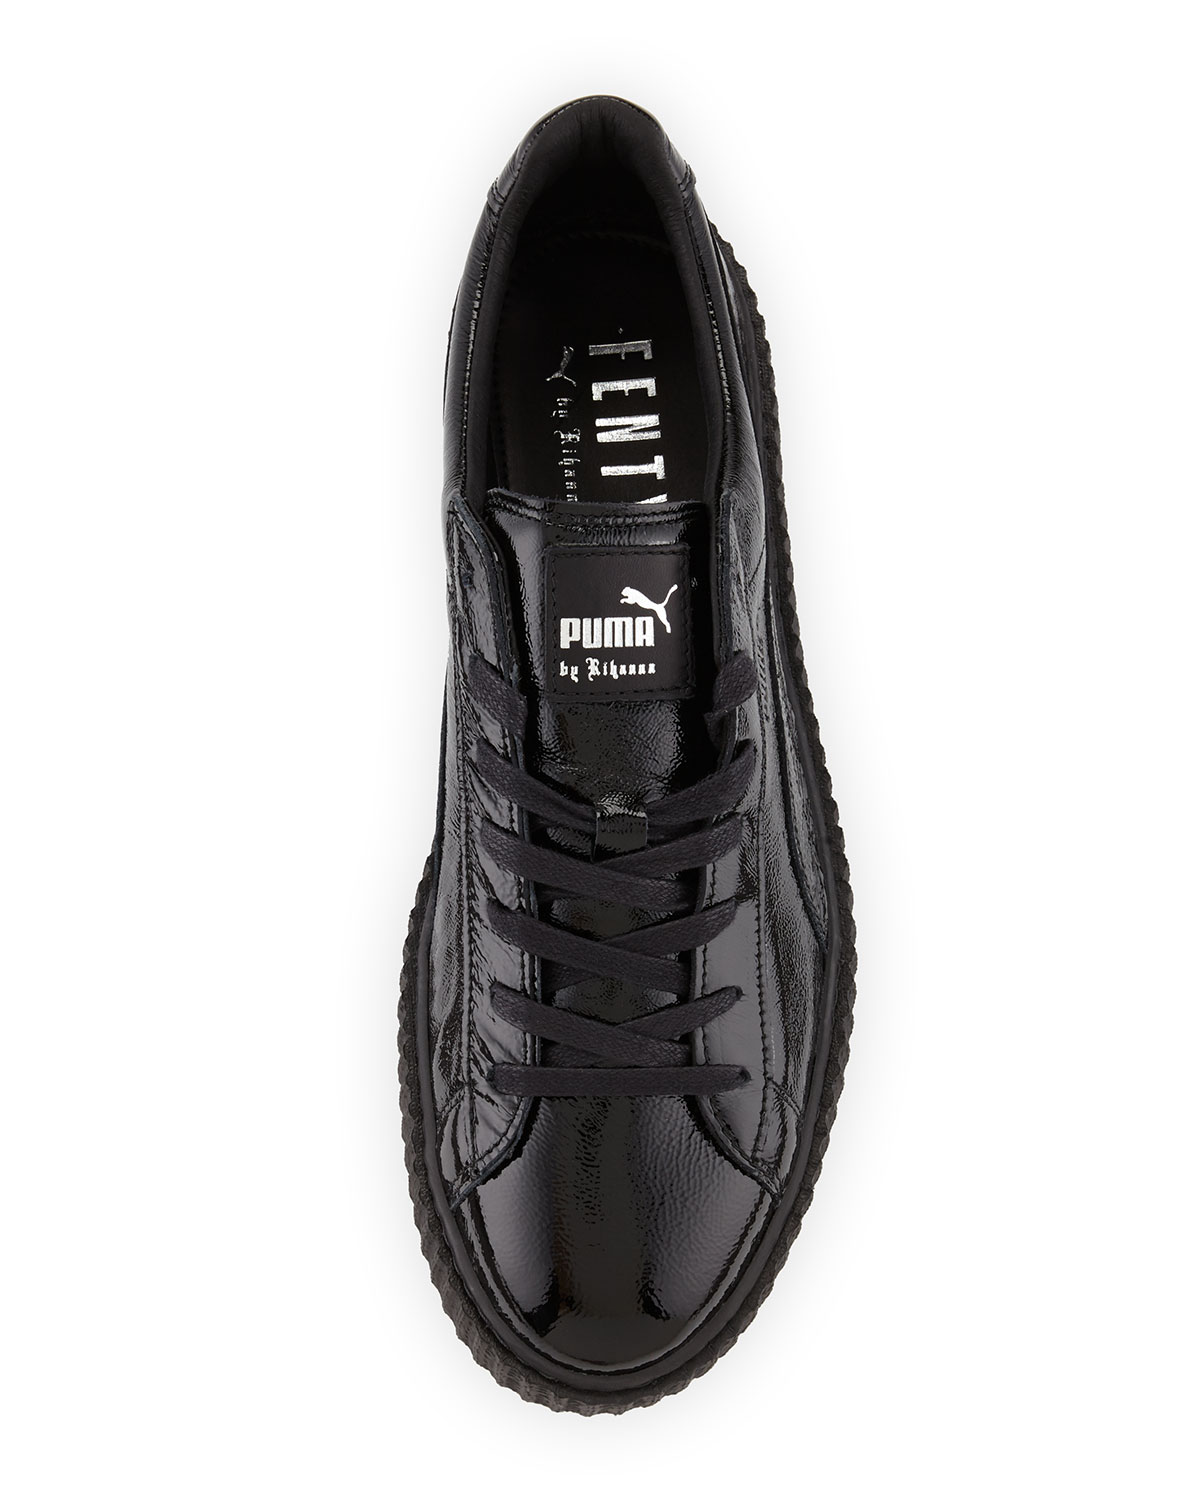 size 40 e0f83 8b87d x Fenty Puma by Rihanna Men's Cracked Leather Creeper Sneaker, Black